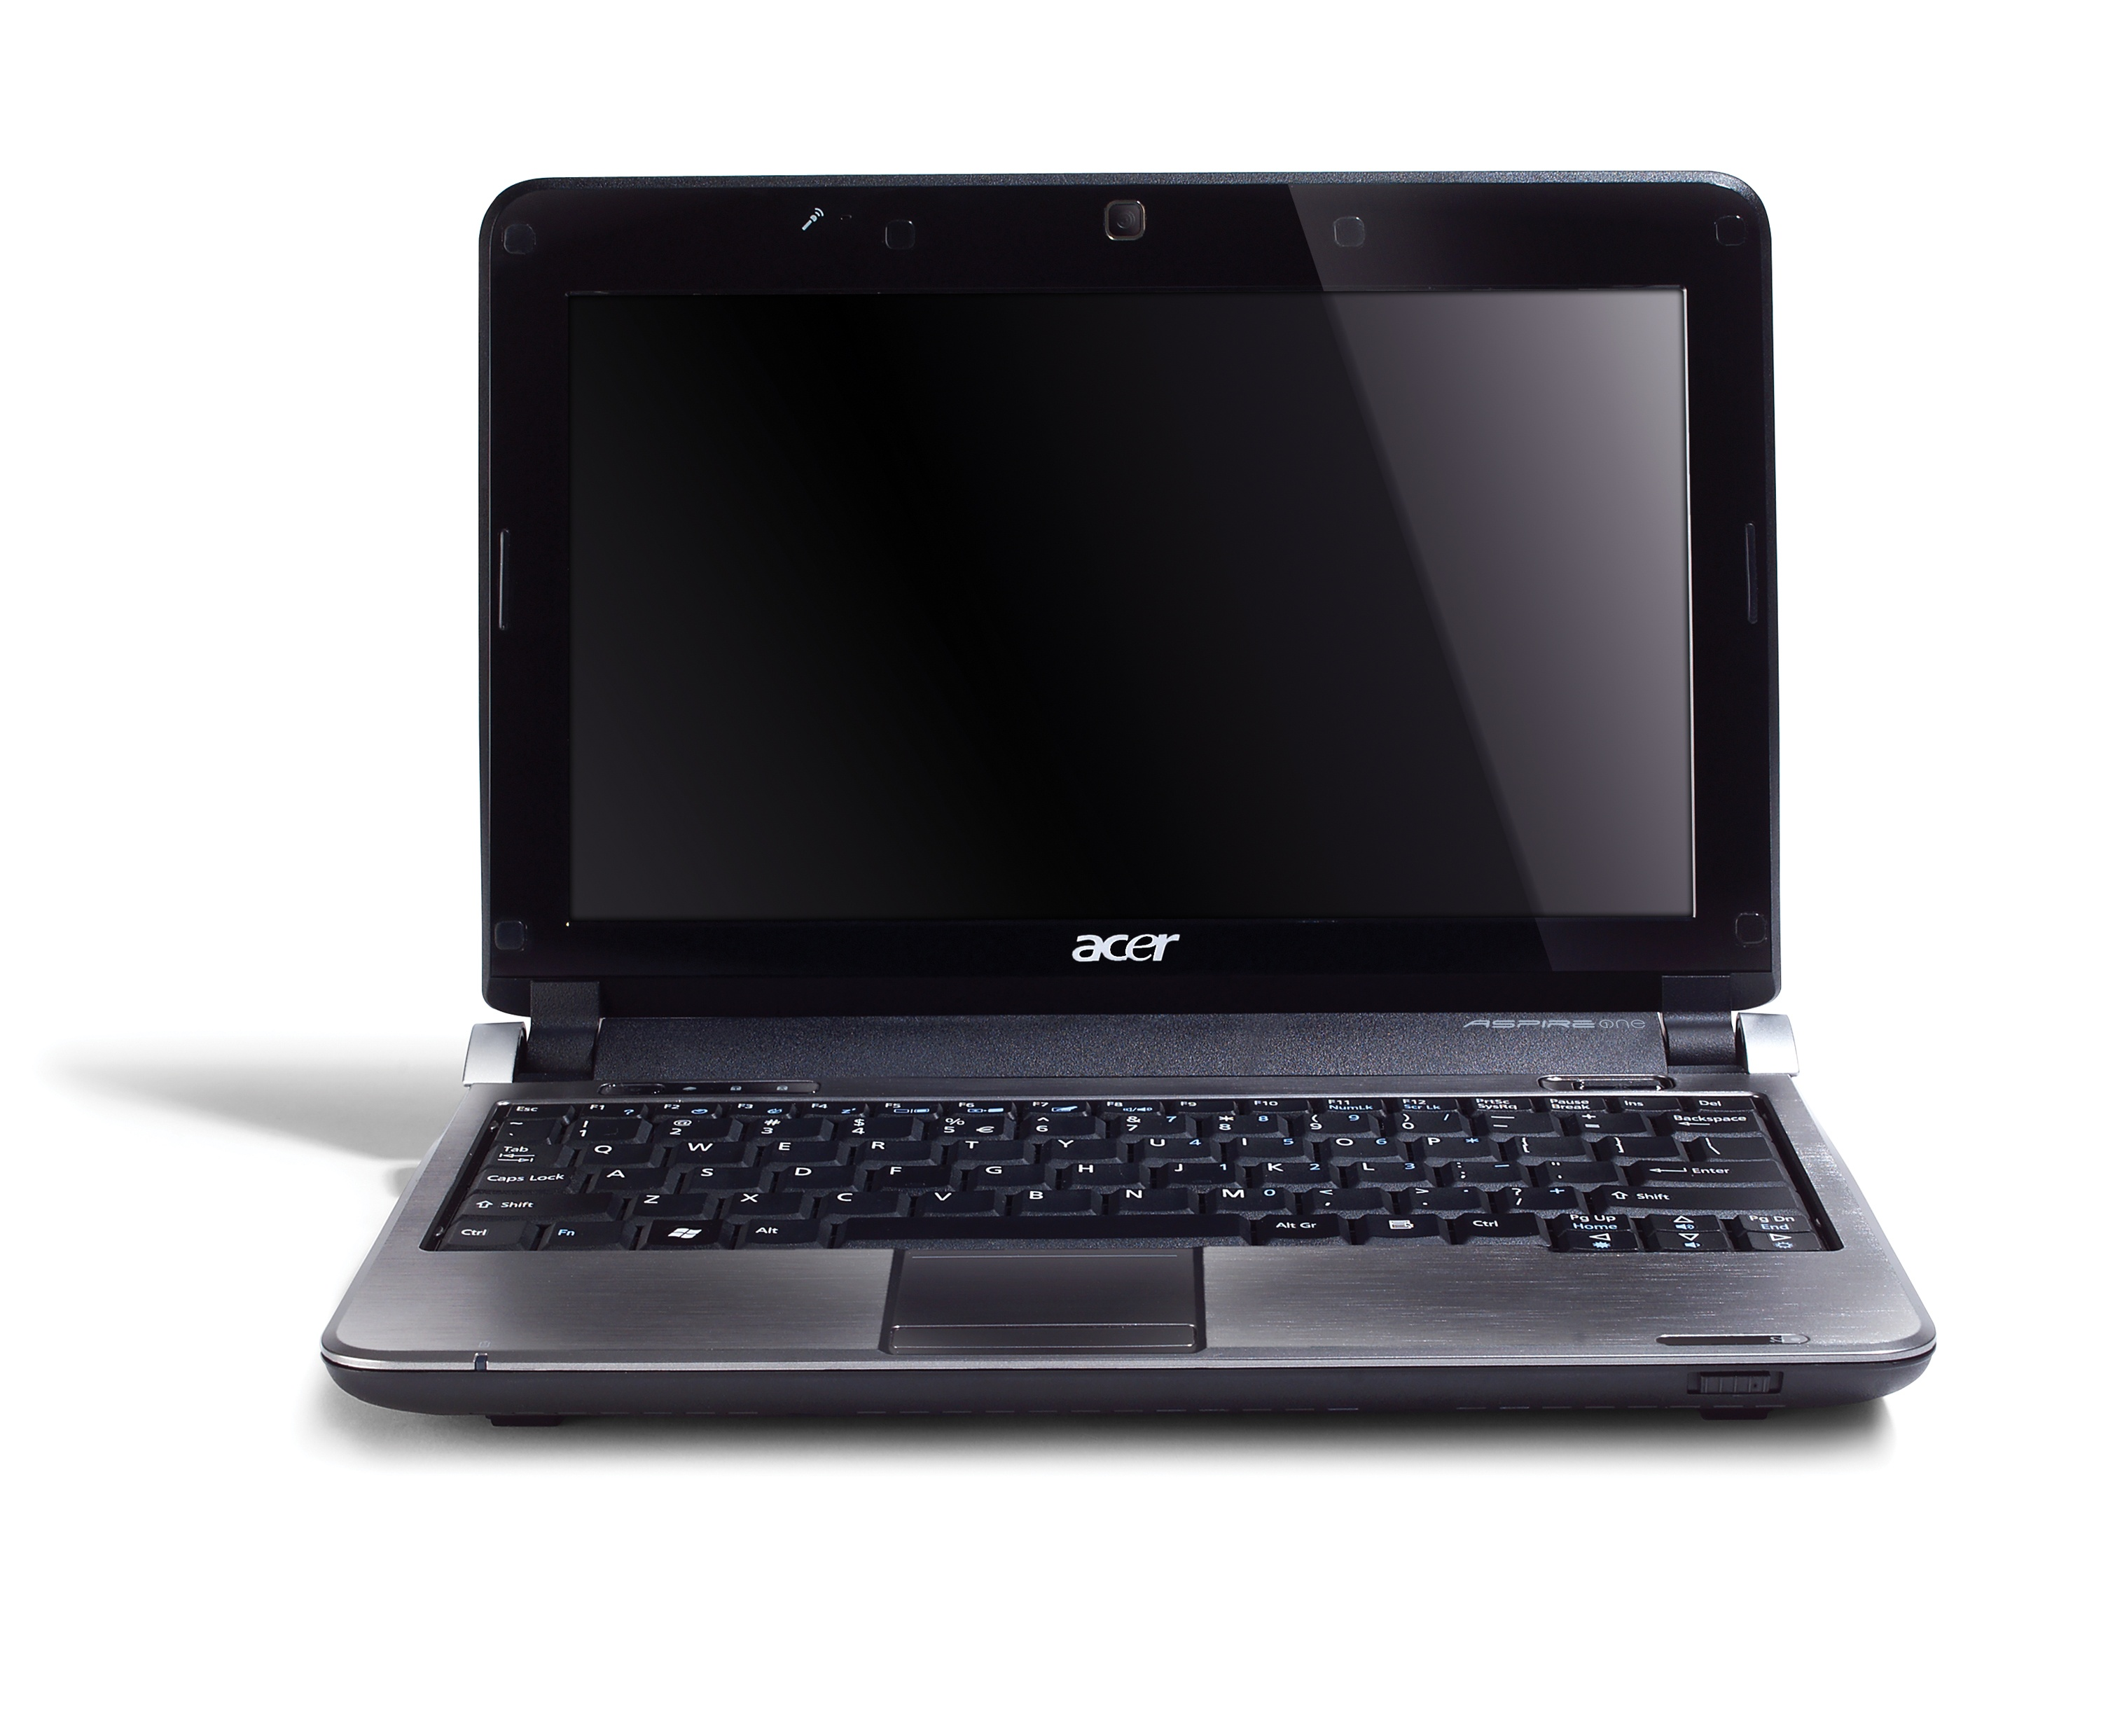 Acer Aspire One D150 available in US now: $349.99